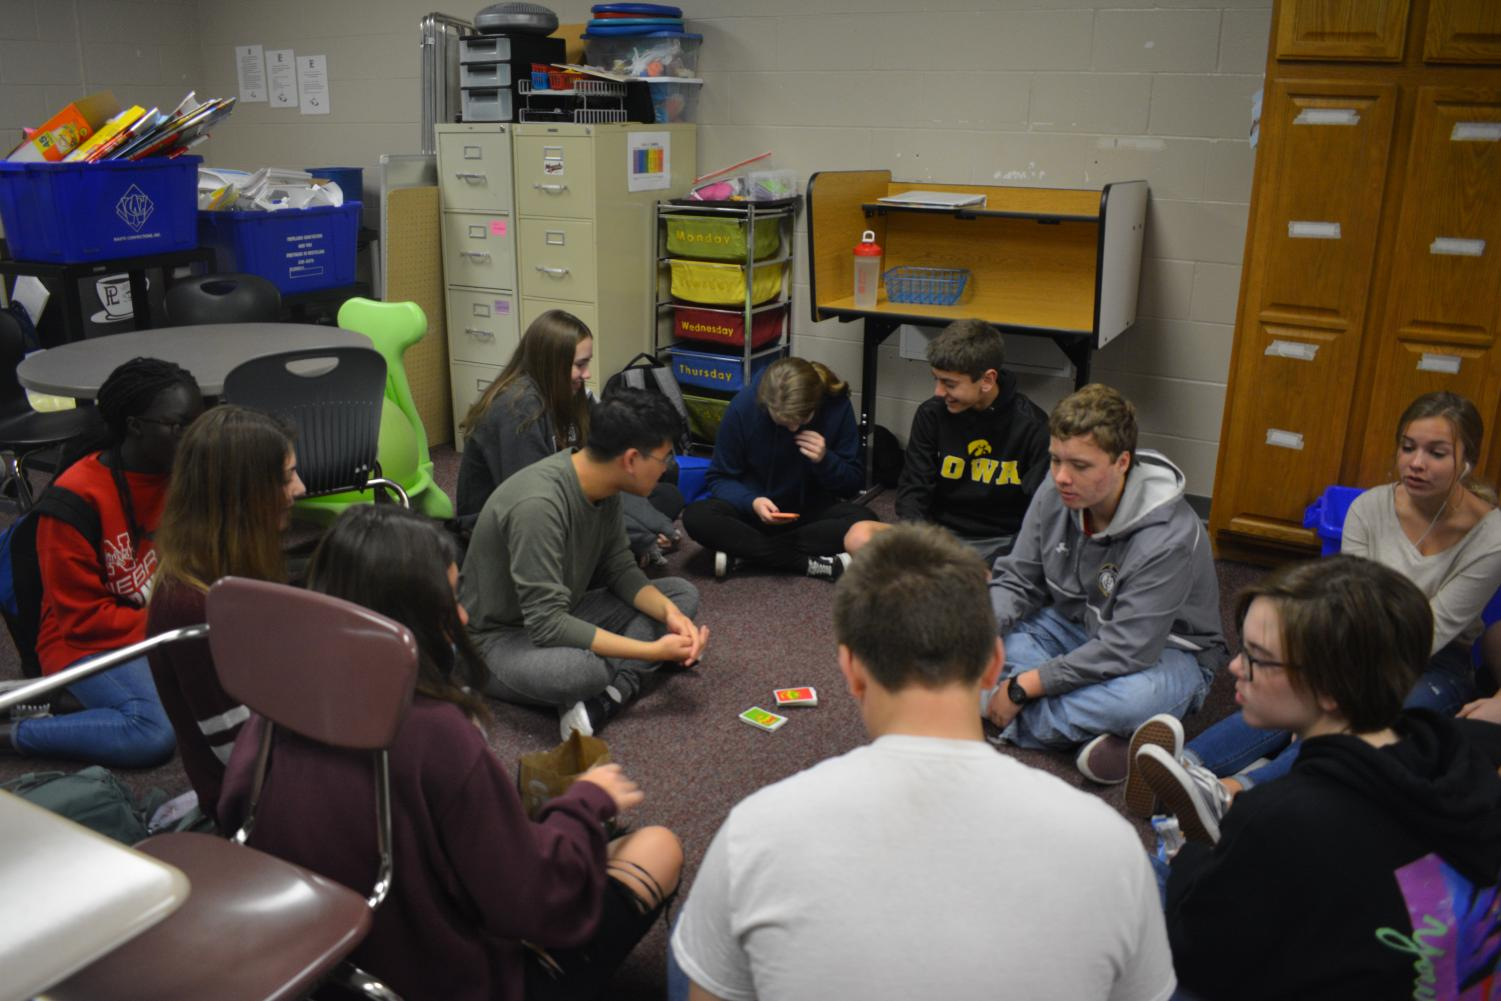 Members of Circle of Friends gather together to play games.